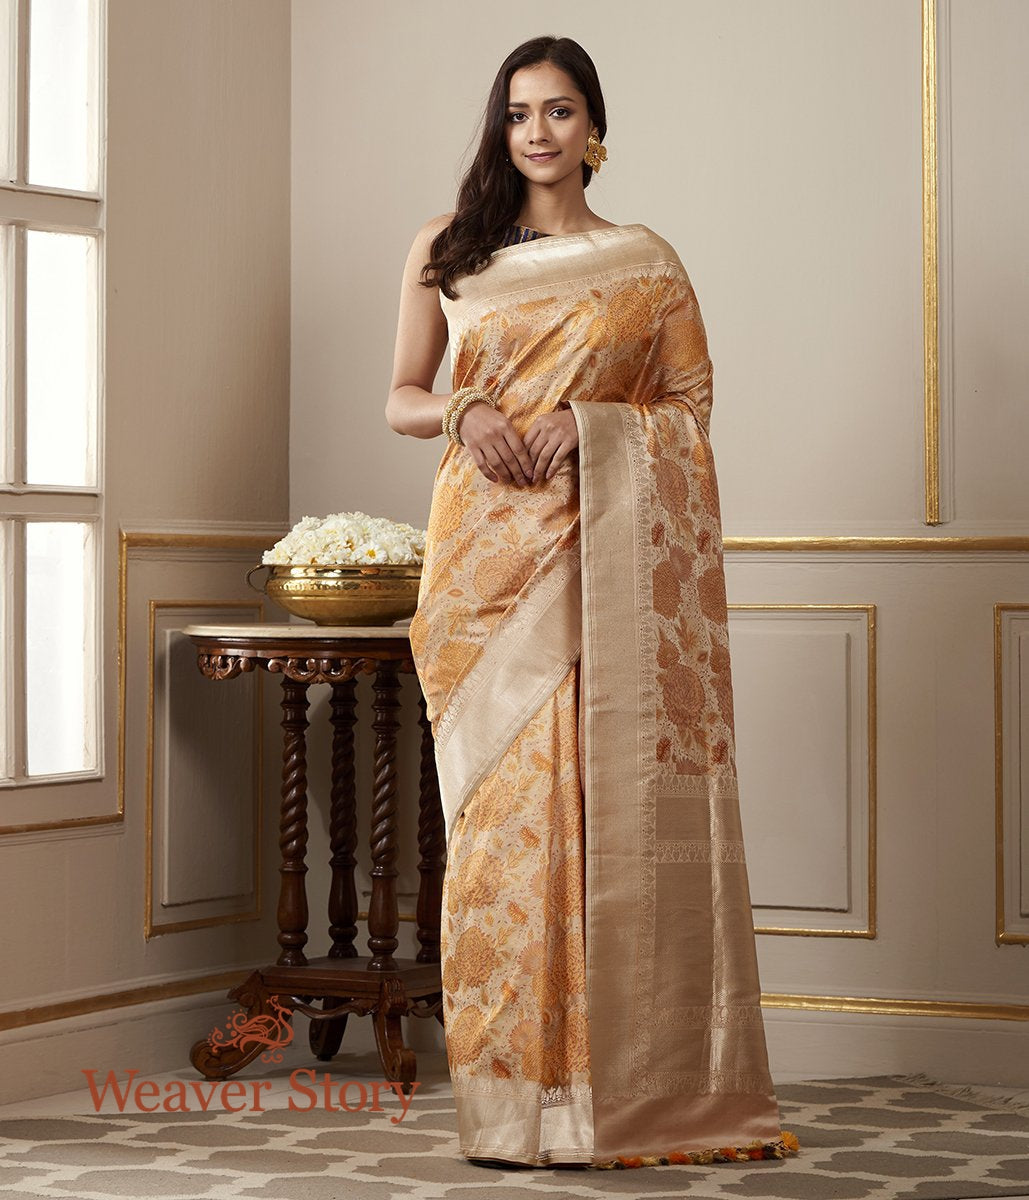 Handwoven Beige and Orange Banarasi Tanchui Saree with Floral Motifs